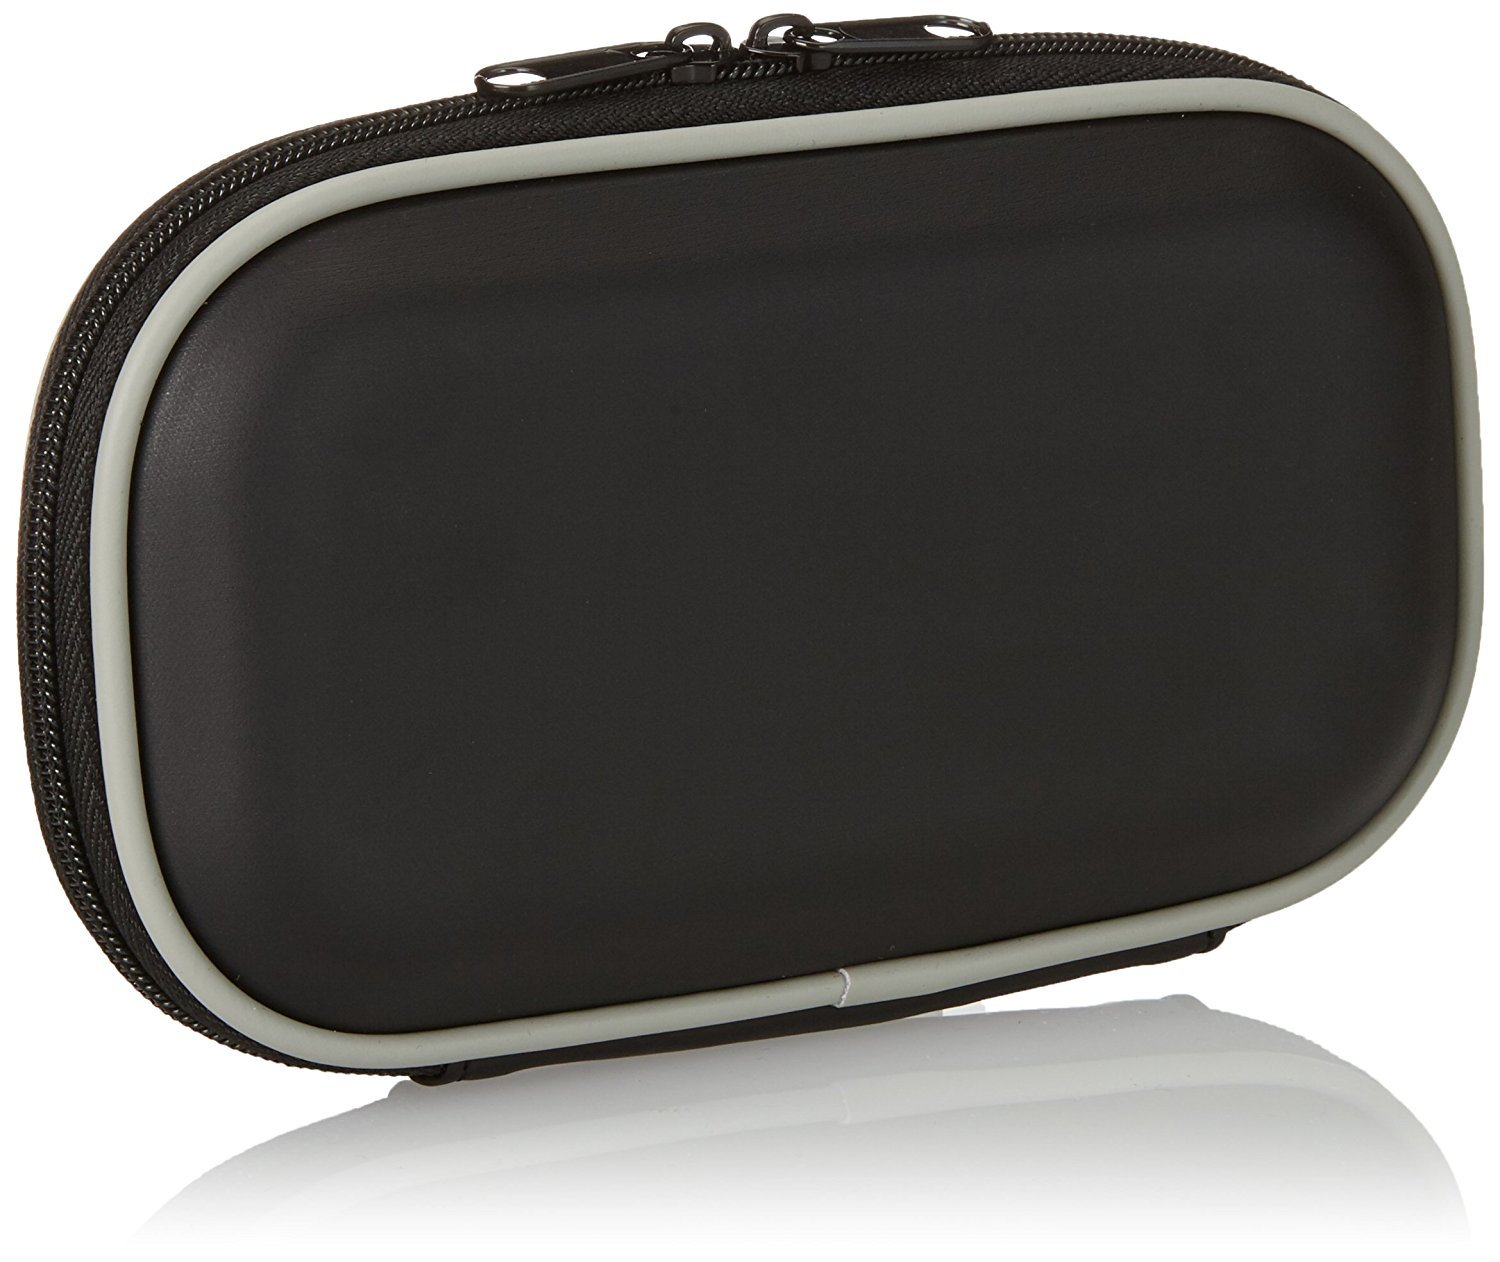 CS-141 Carrying Case For LS-100